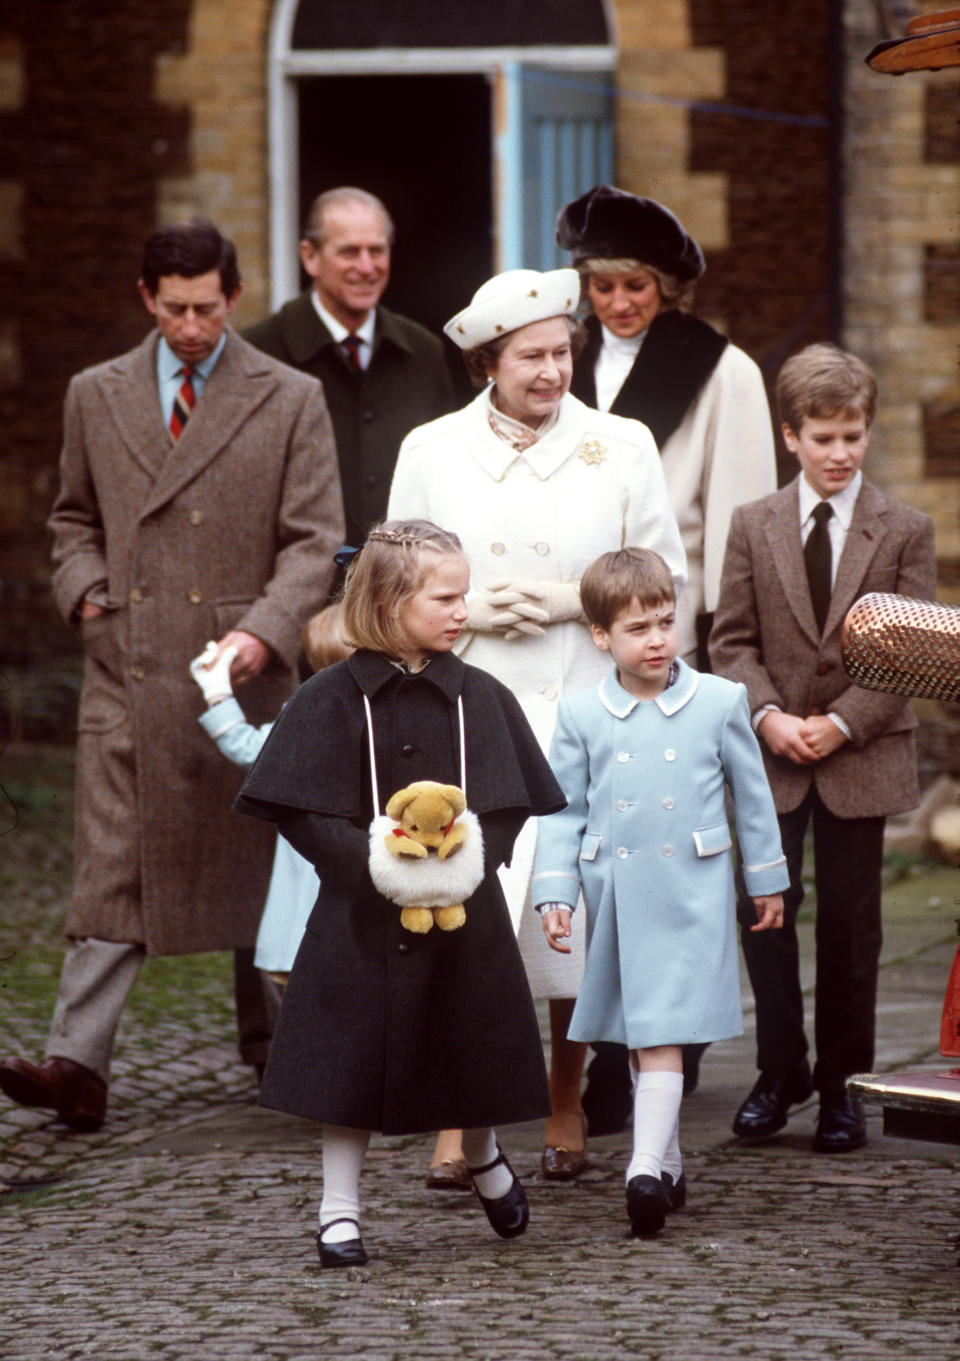 Queen And Family At Sandringham (Tim Graham / Getty Images)